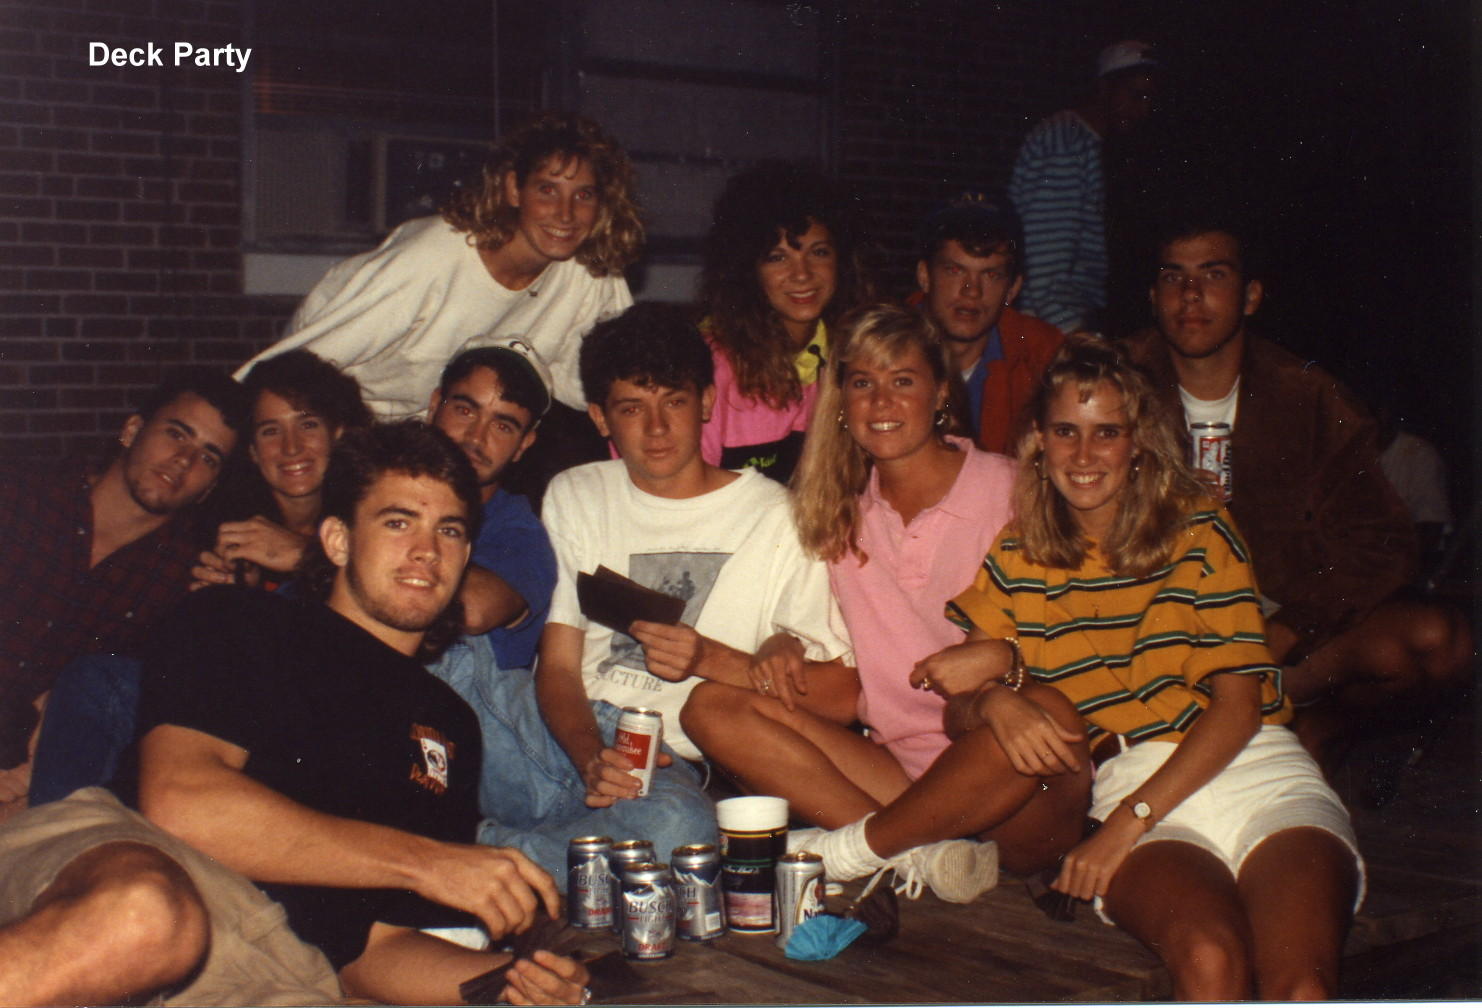 1993 Deck Party-SteveThompson, ZachWard, BrannonBoggus, MarcPeoples.jpg